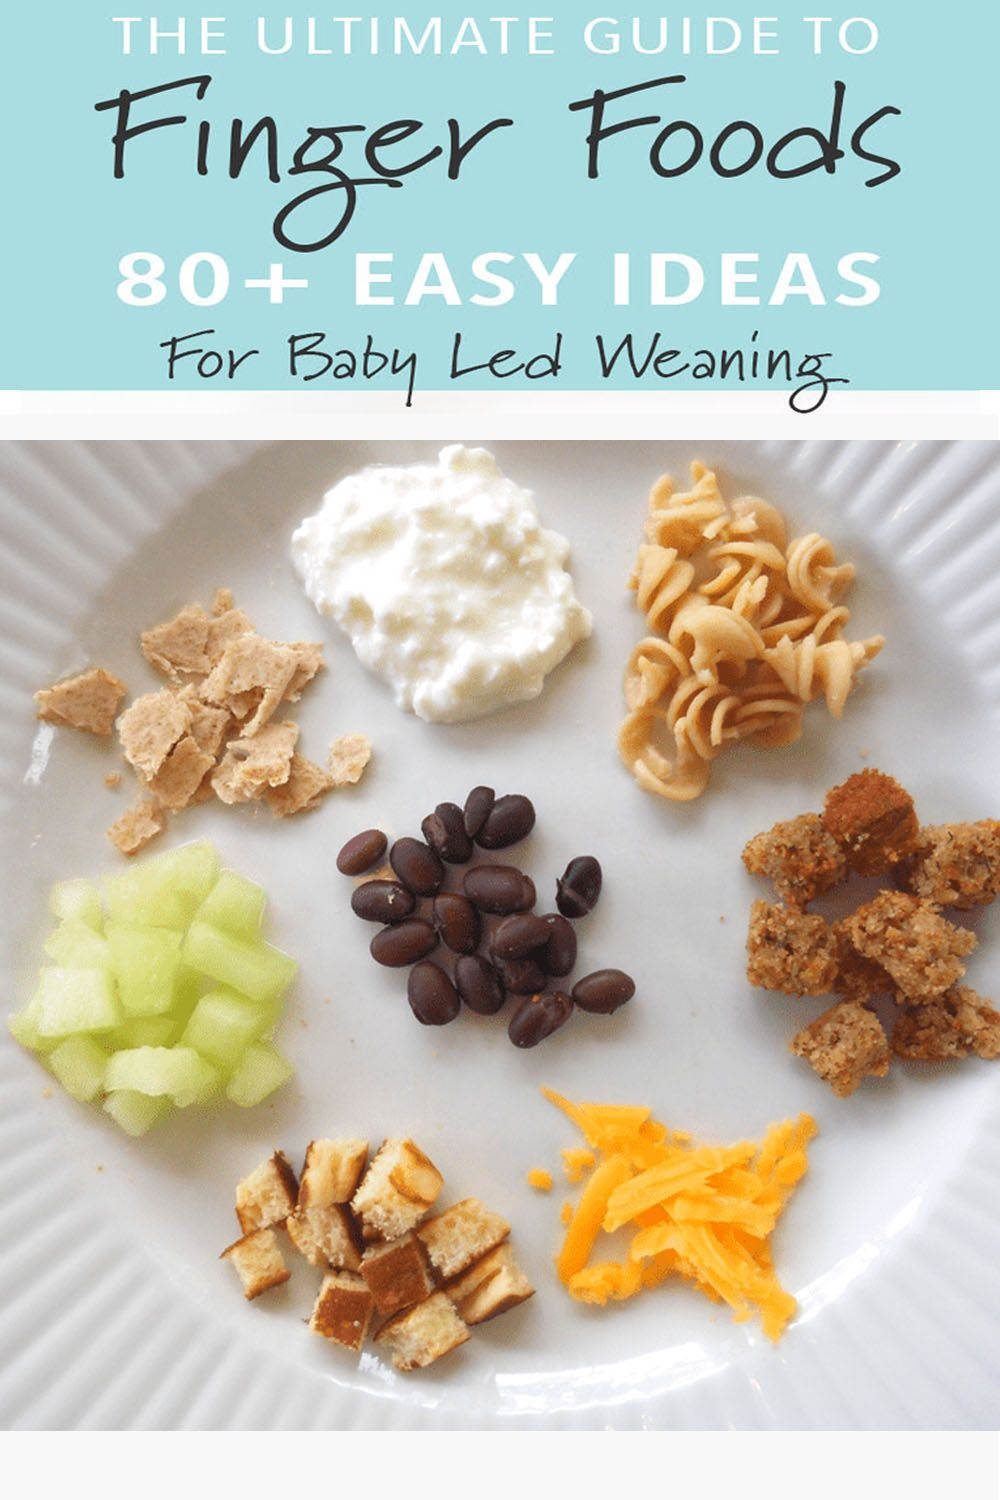 THE ULTIMATE GUIDE OF FINGERS FOODS FOR BABY